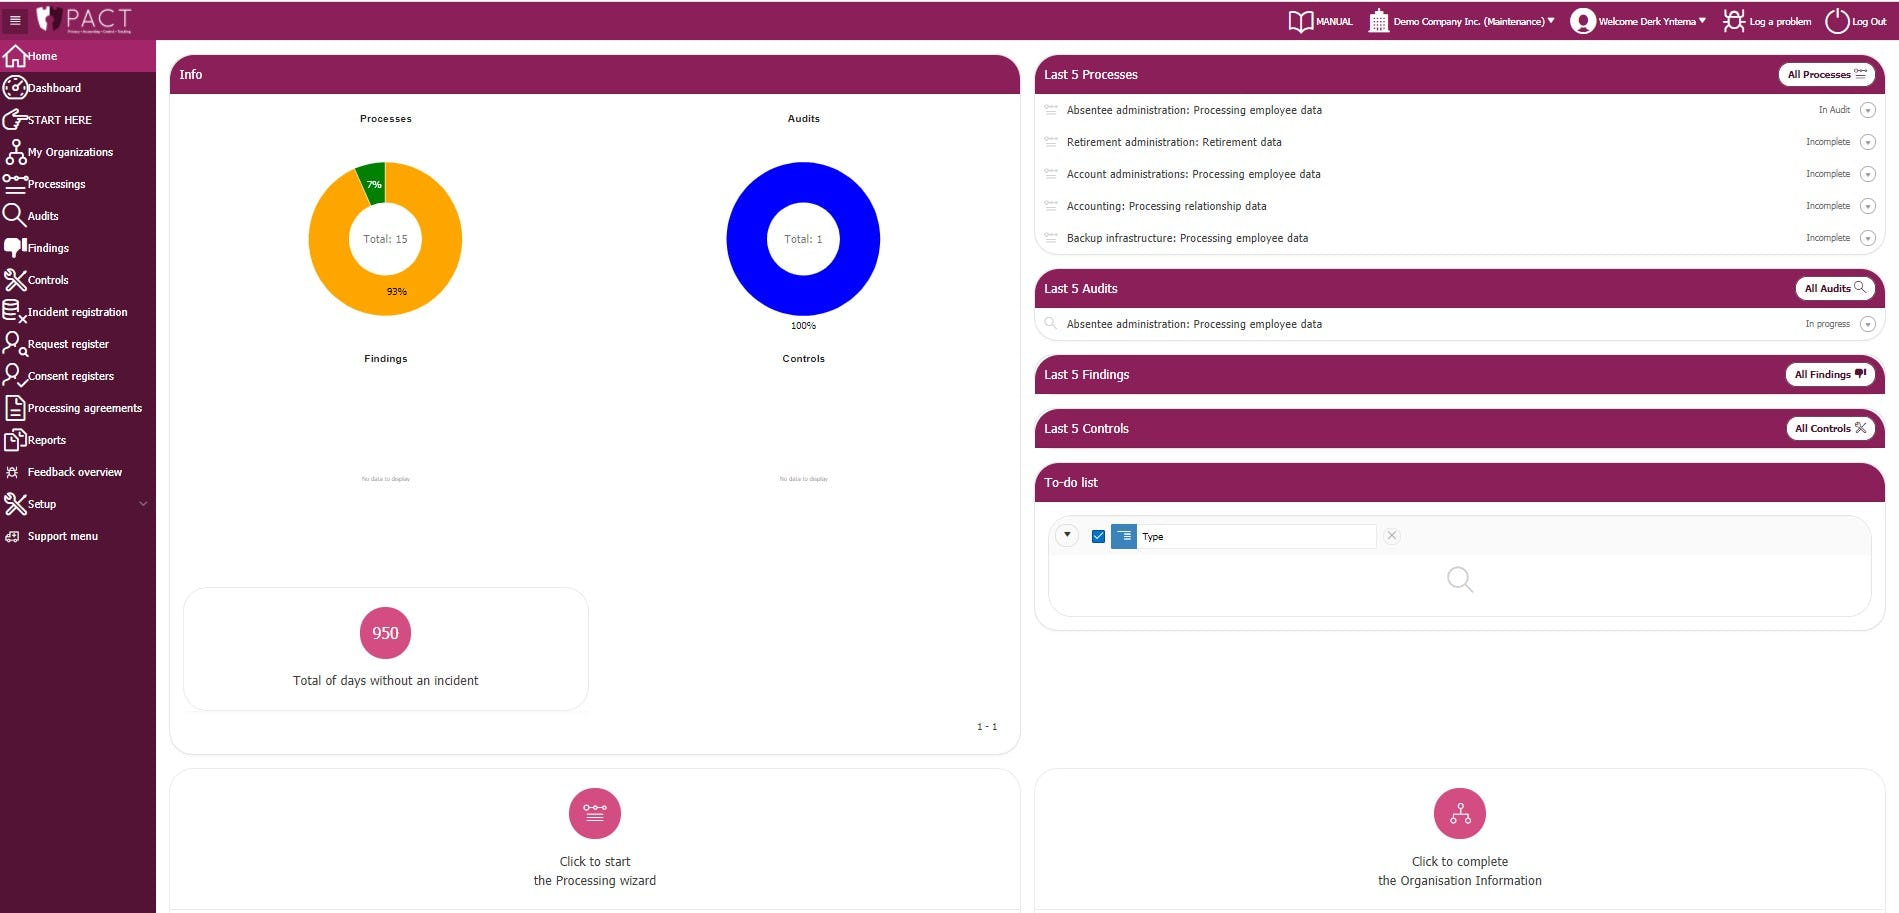 Pact-Privacy Software - 1